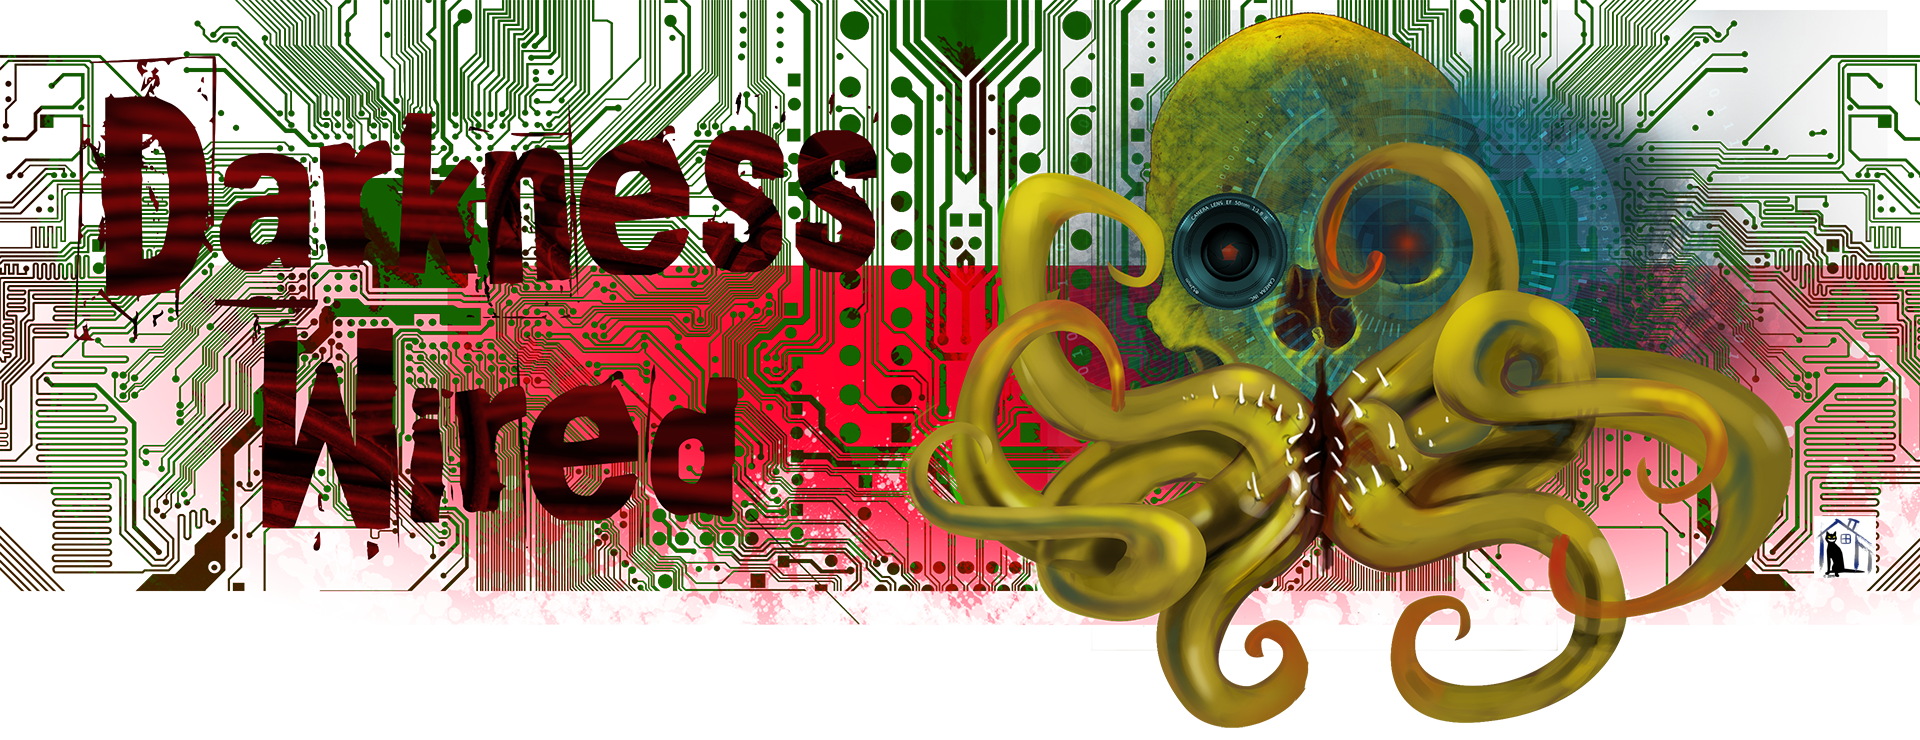 Abstract, surreal image of skull with tentacles and technical elements